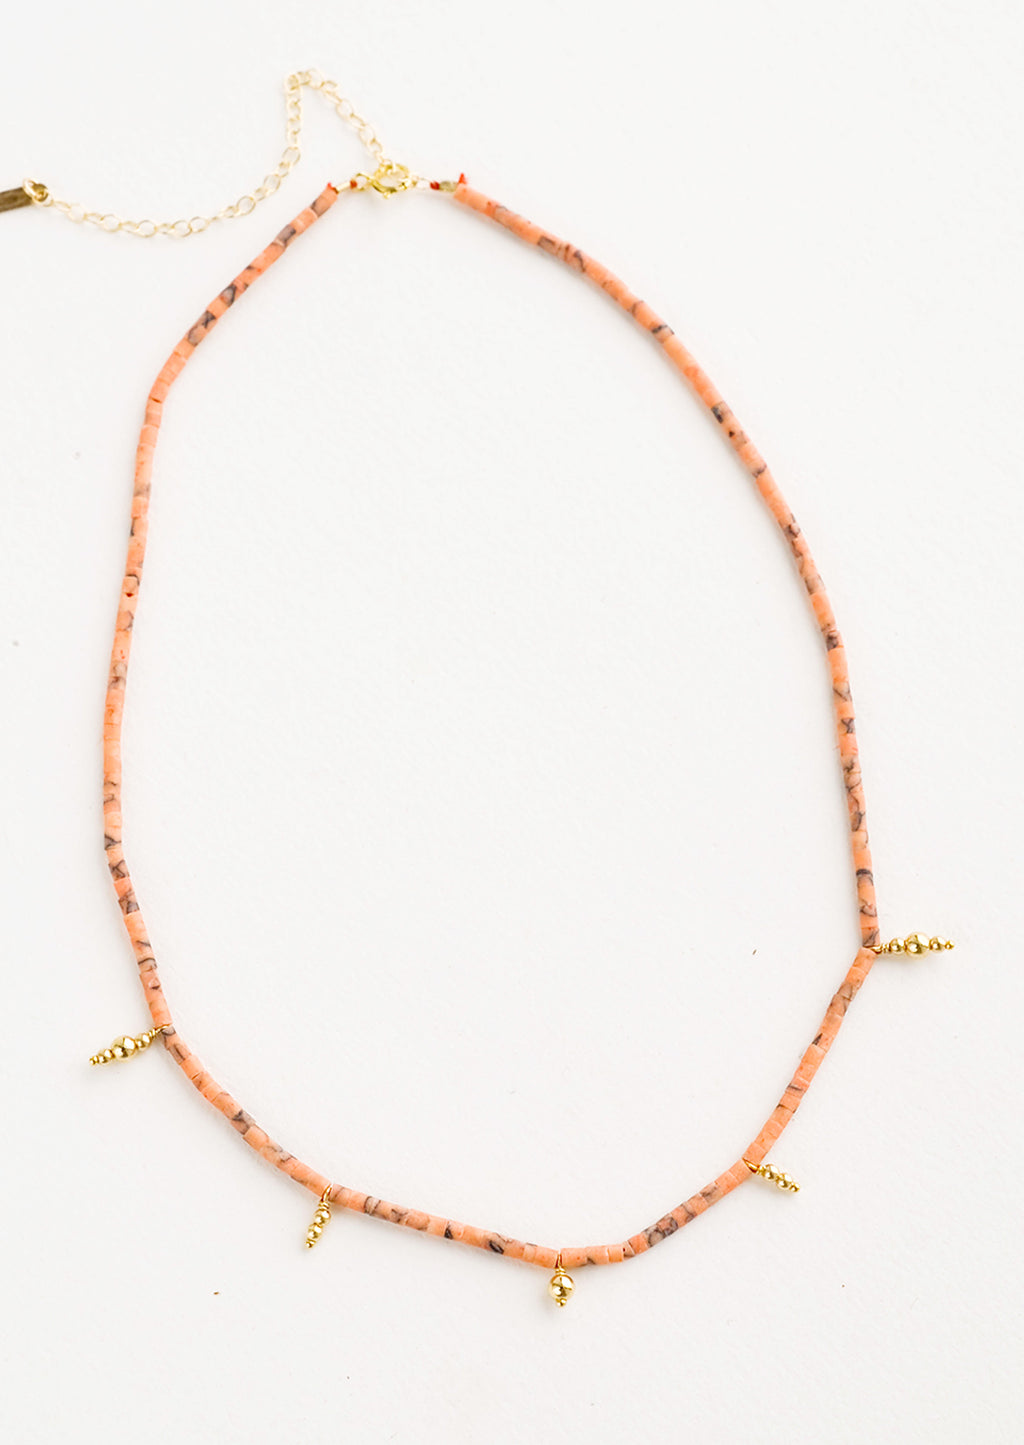 Peach: Beaded necklace with small peach and gold beads